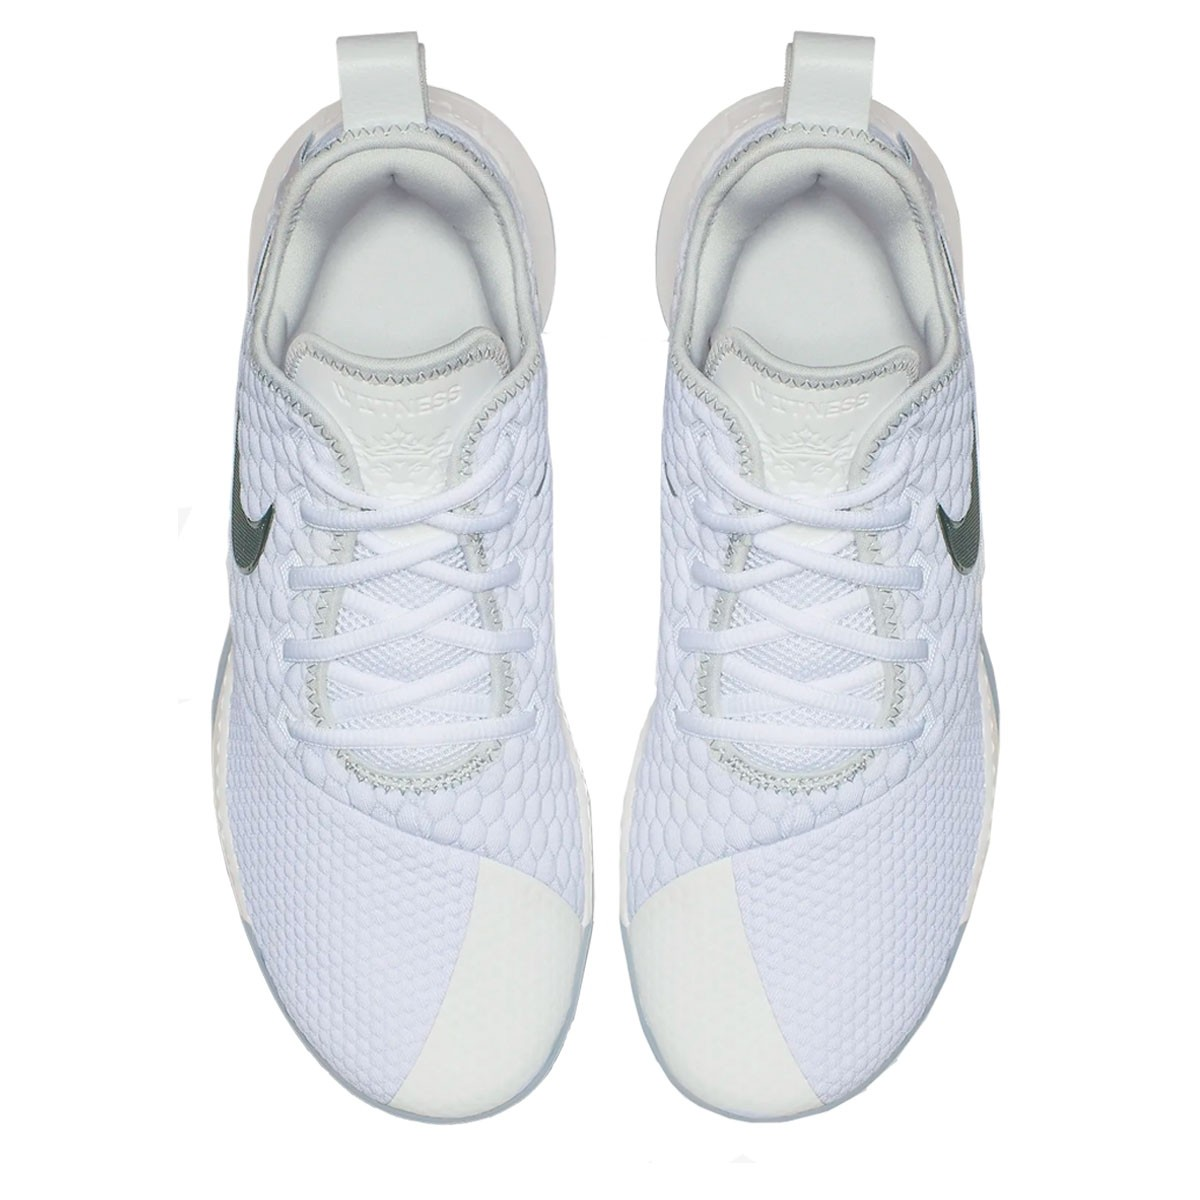 869b526a270a38 Buy Nike Lebron Witness III GS  White Ice  Basketball shoes   sneakers